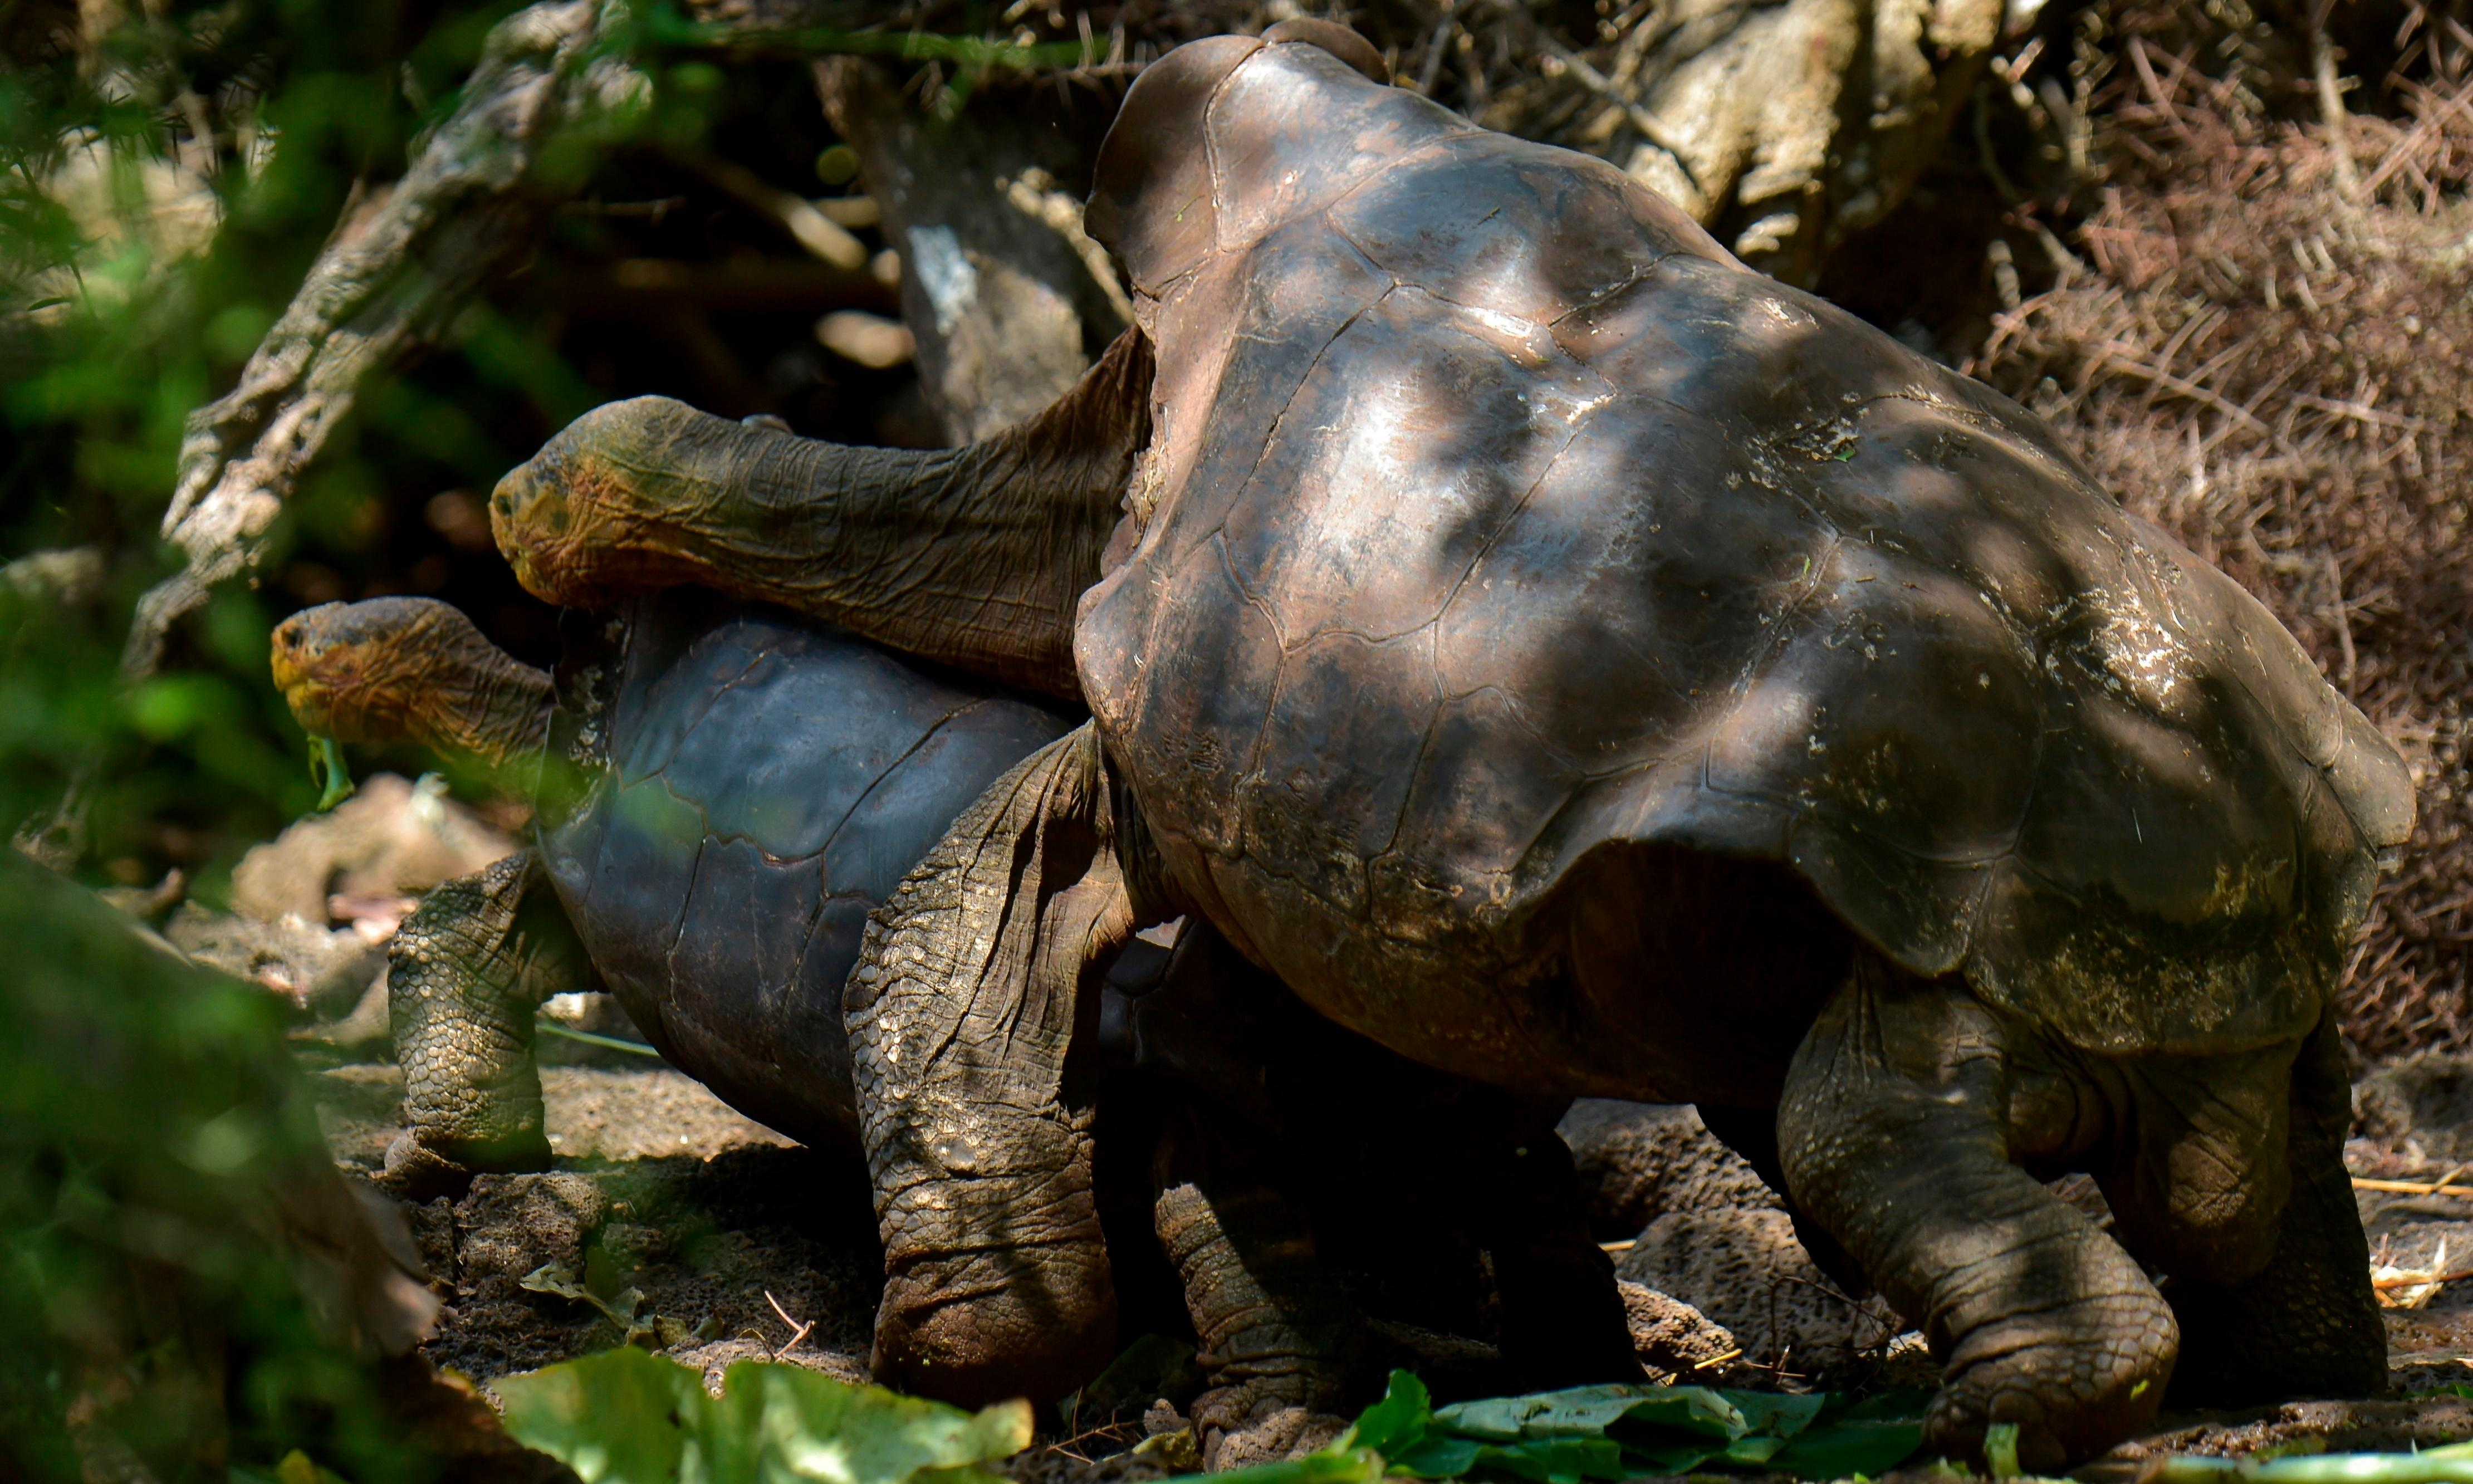 Sex superstar: how Diego the horny tortoise saved his species